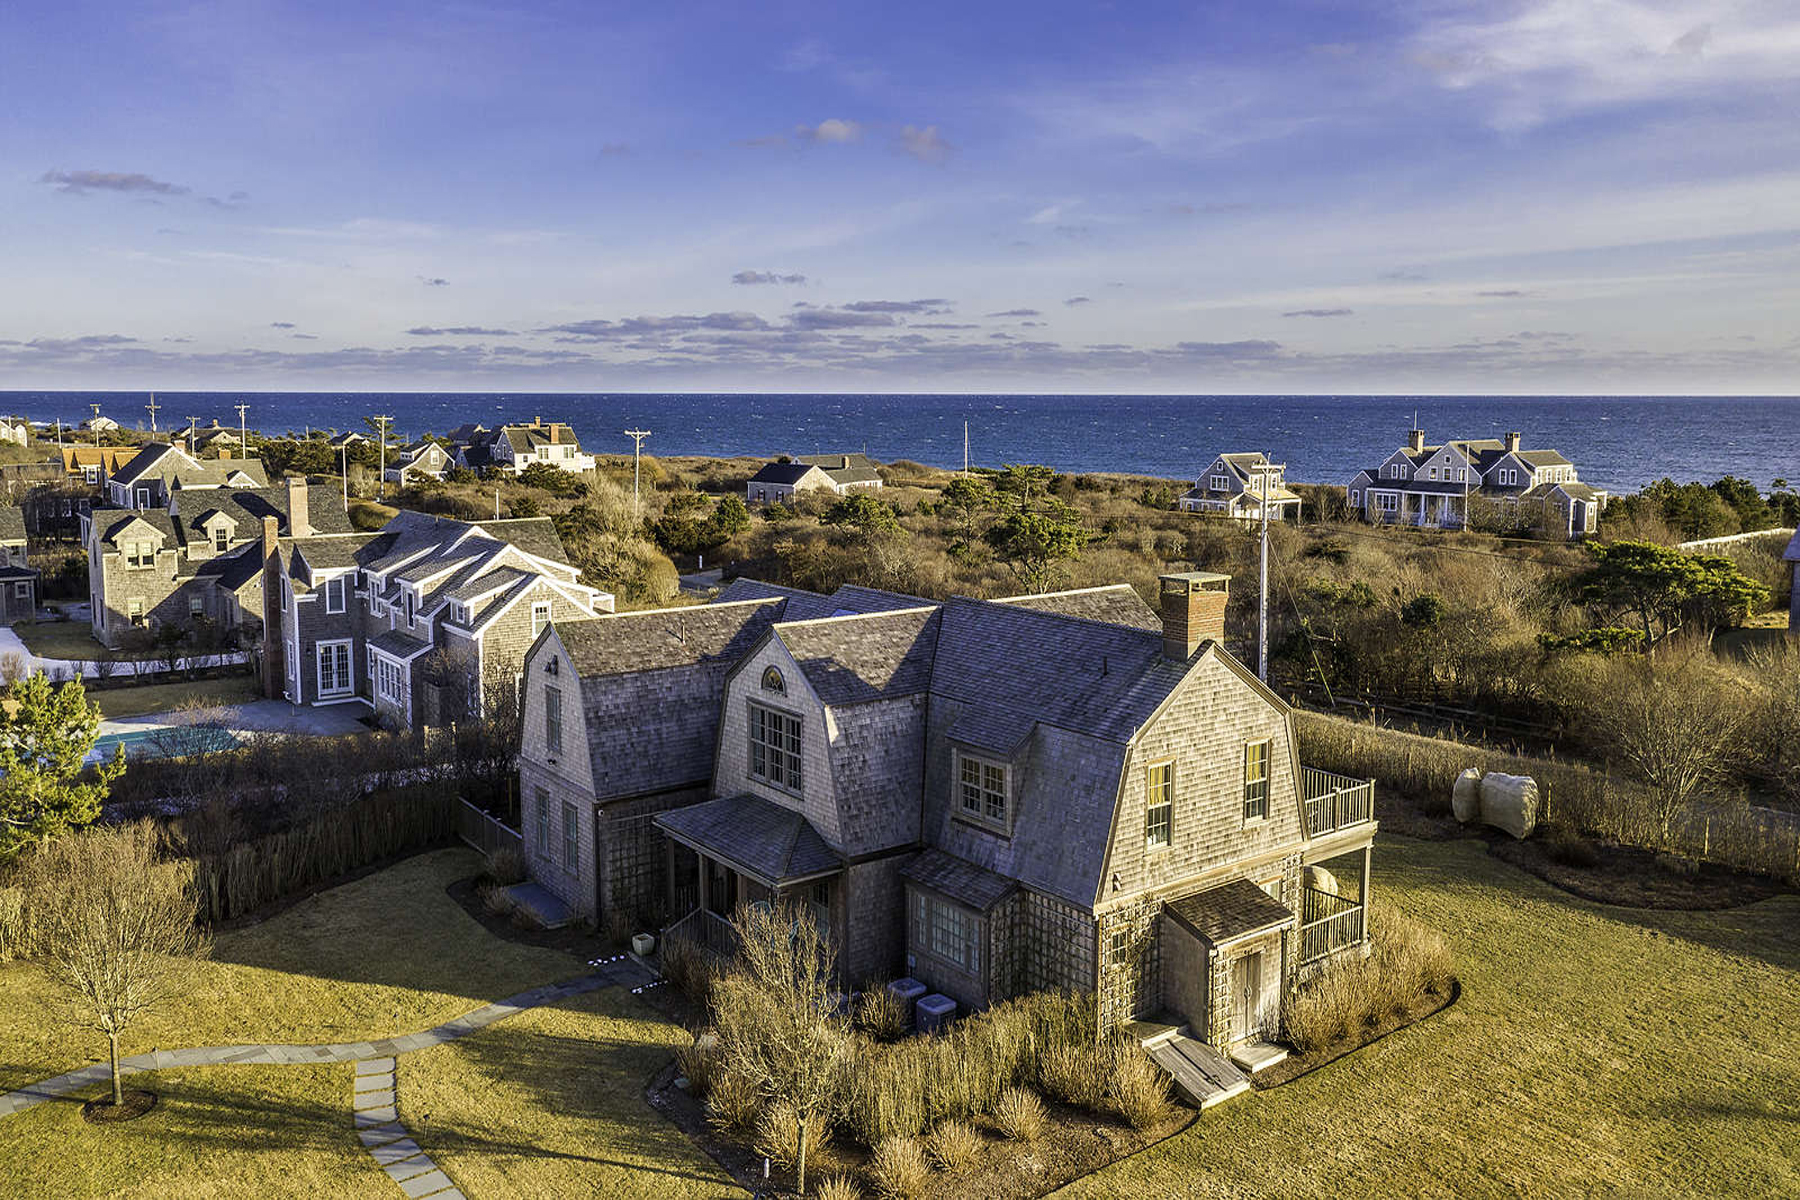 Single Family Home for Active at Stunning South Shore Compound 22 Nonantum Avenue Nantucket, Massachusetts 02554 United States